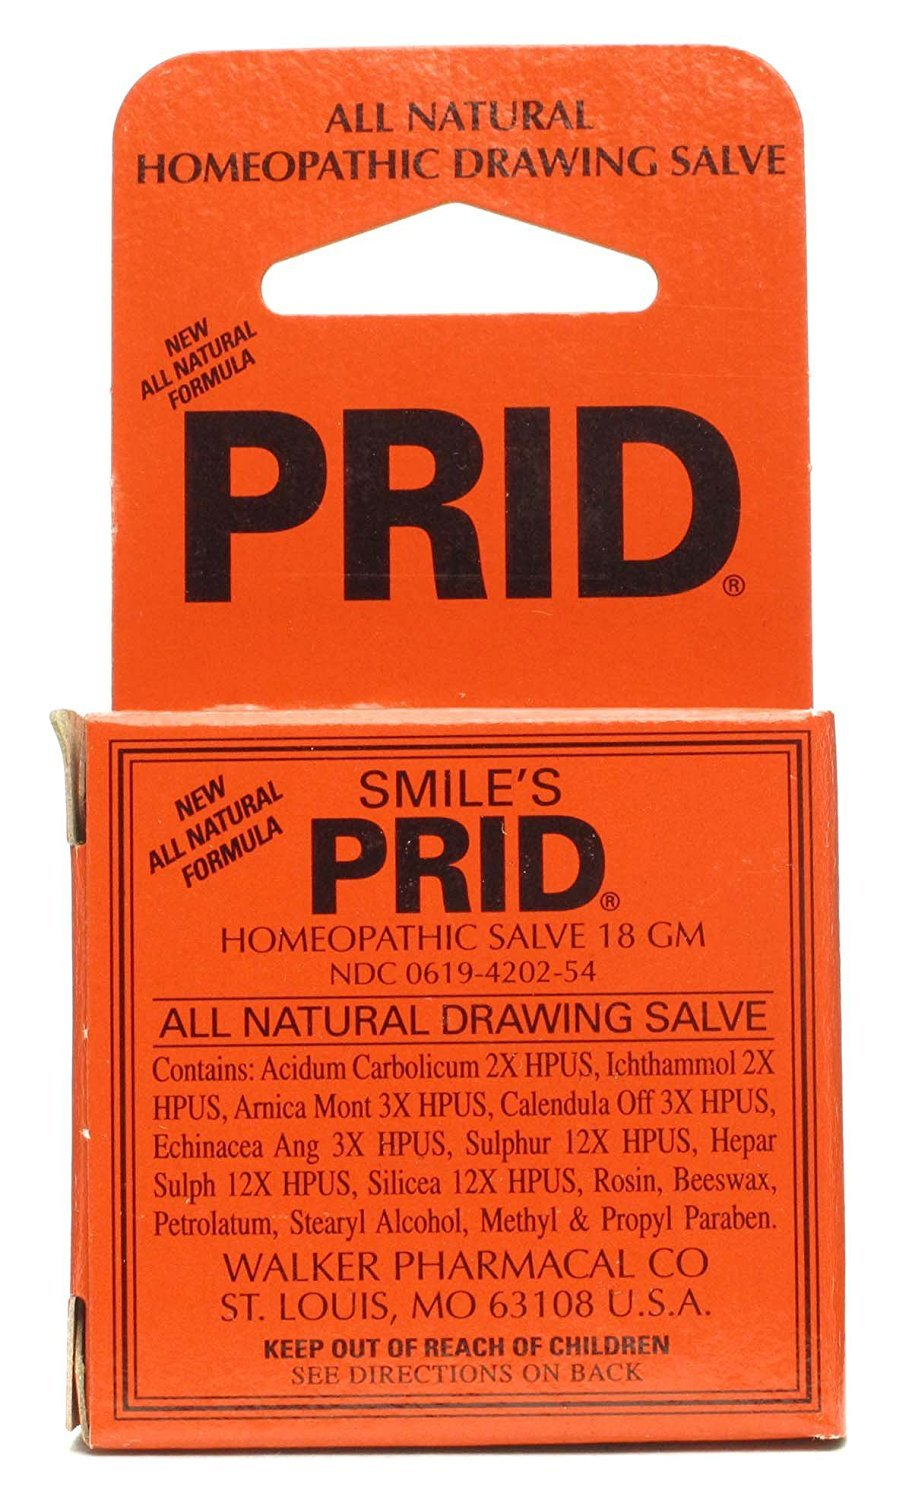 Prid Homeopathic Salve 18 g